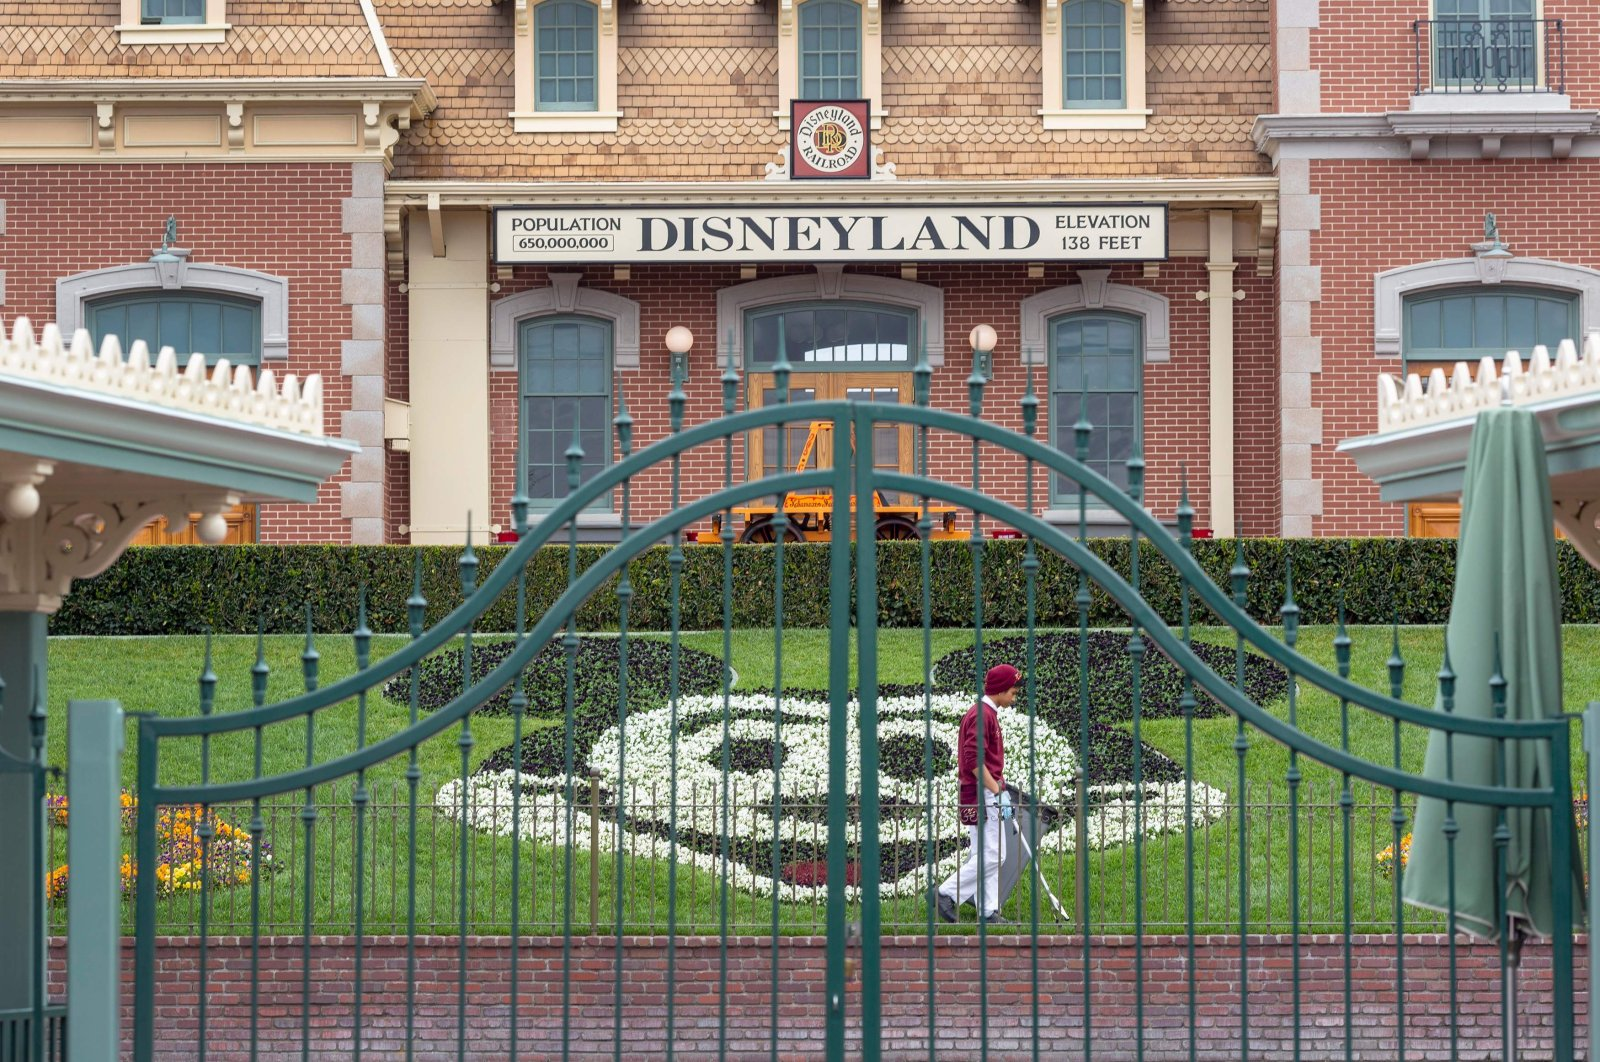 An employee cleans the grounds behind the closed gates of Disneyland Park on the first day of the closure of Disneyland and Disney California Adventure theme parks as fear of the spread of coronavirus continues, in Anaheim, California, March 14, 2020. (AFP Photo)